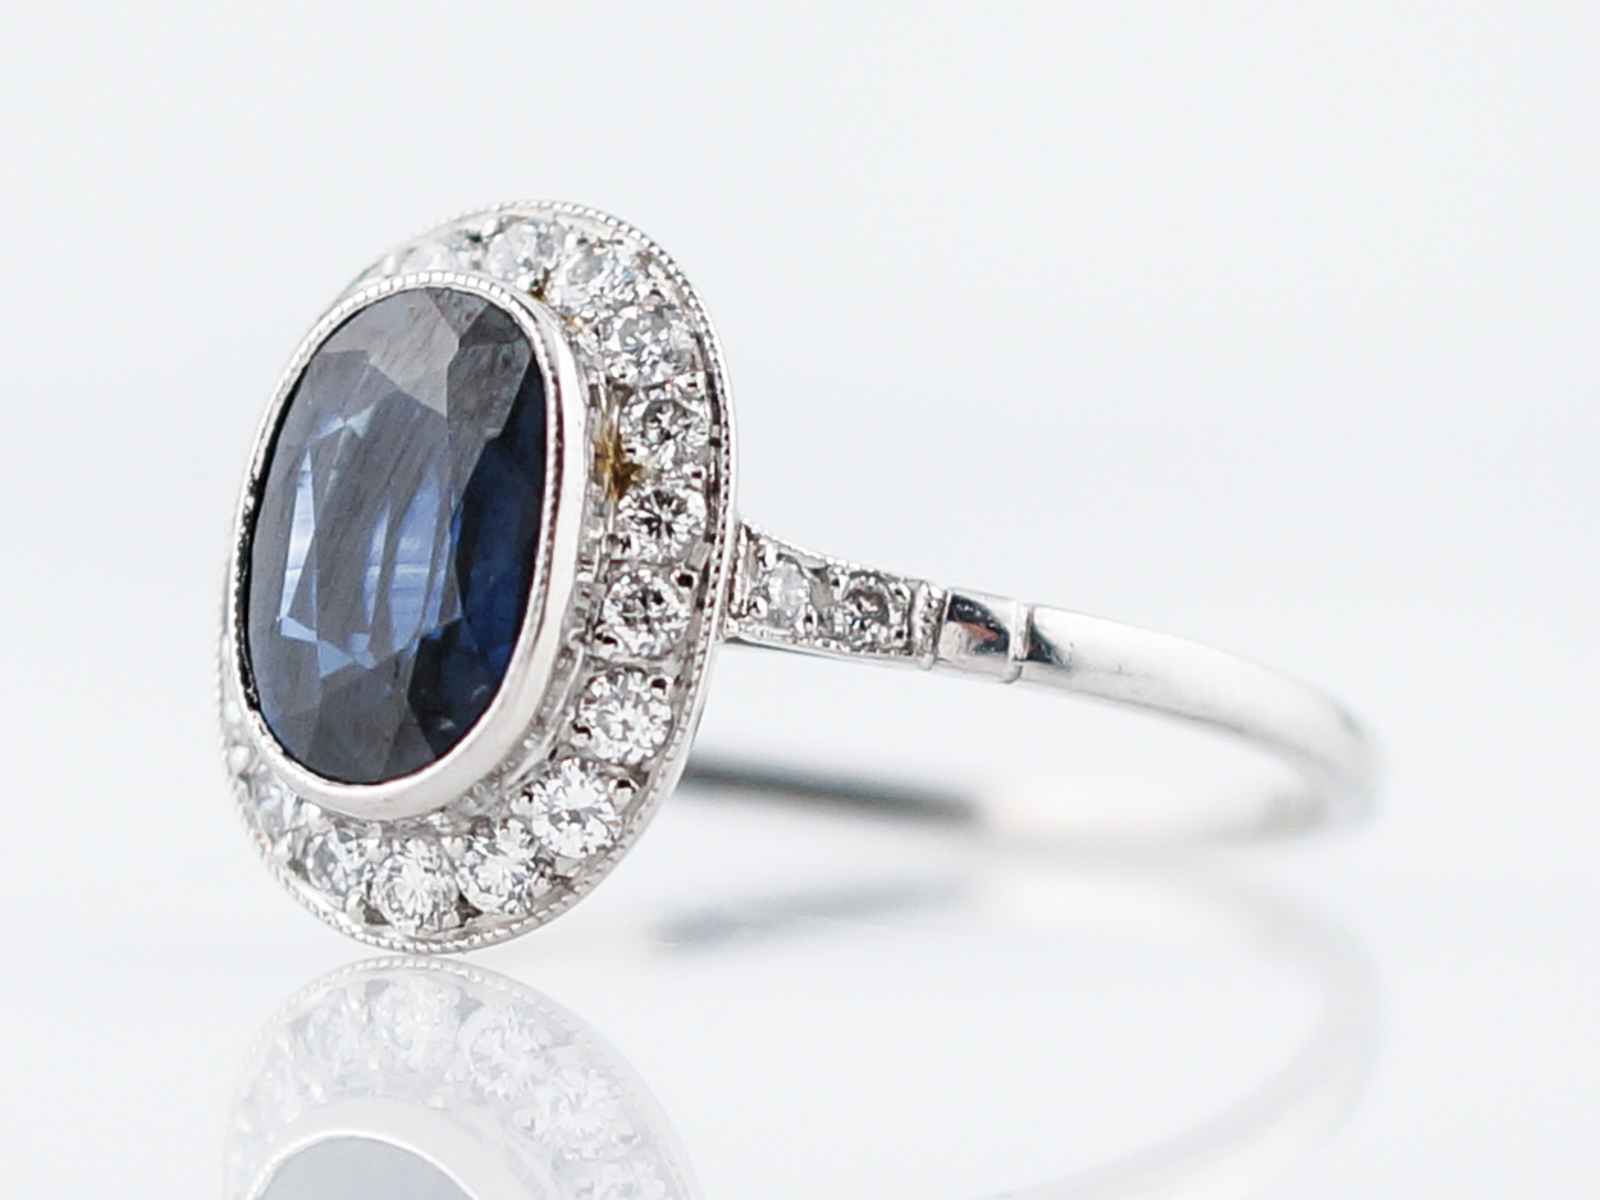 captivating rings designer diamond wedding jewellery promise kirk kara engagement contemporary by